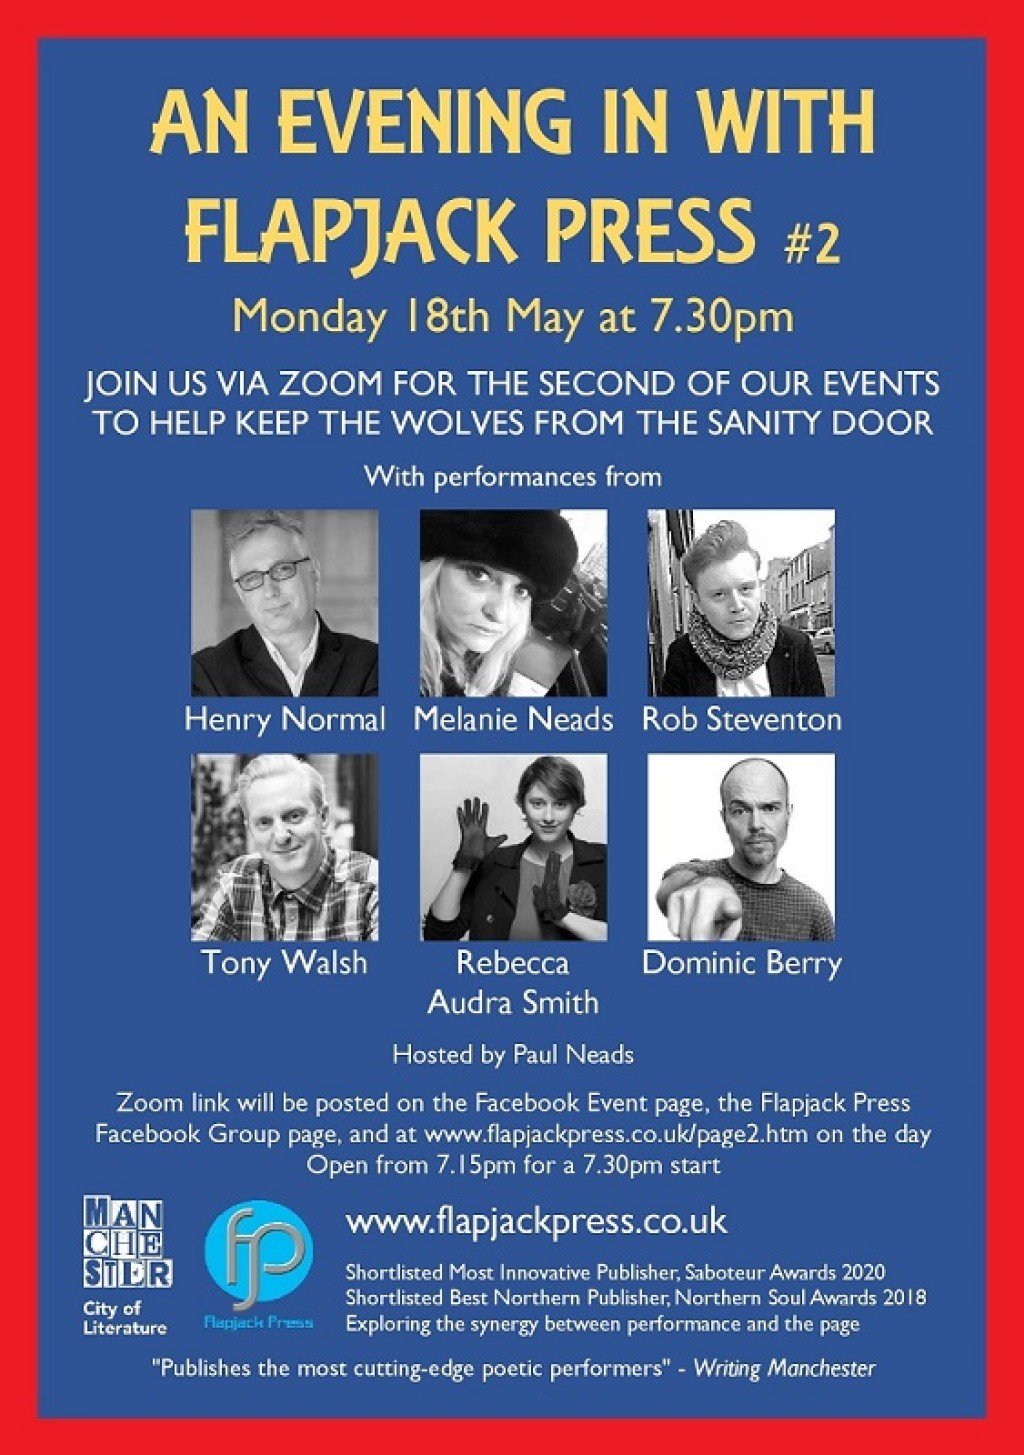 An Evening In with Flapjack Press #2